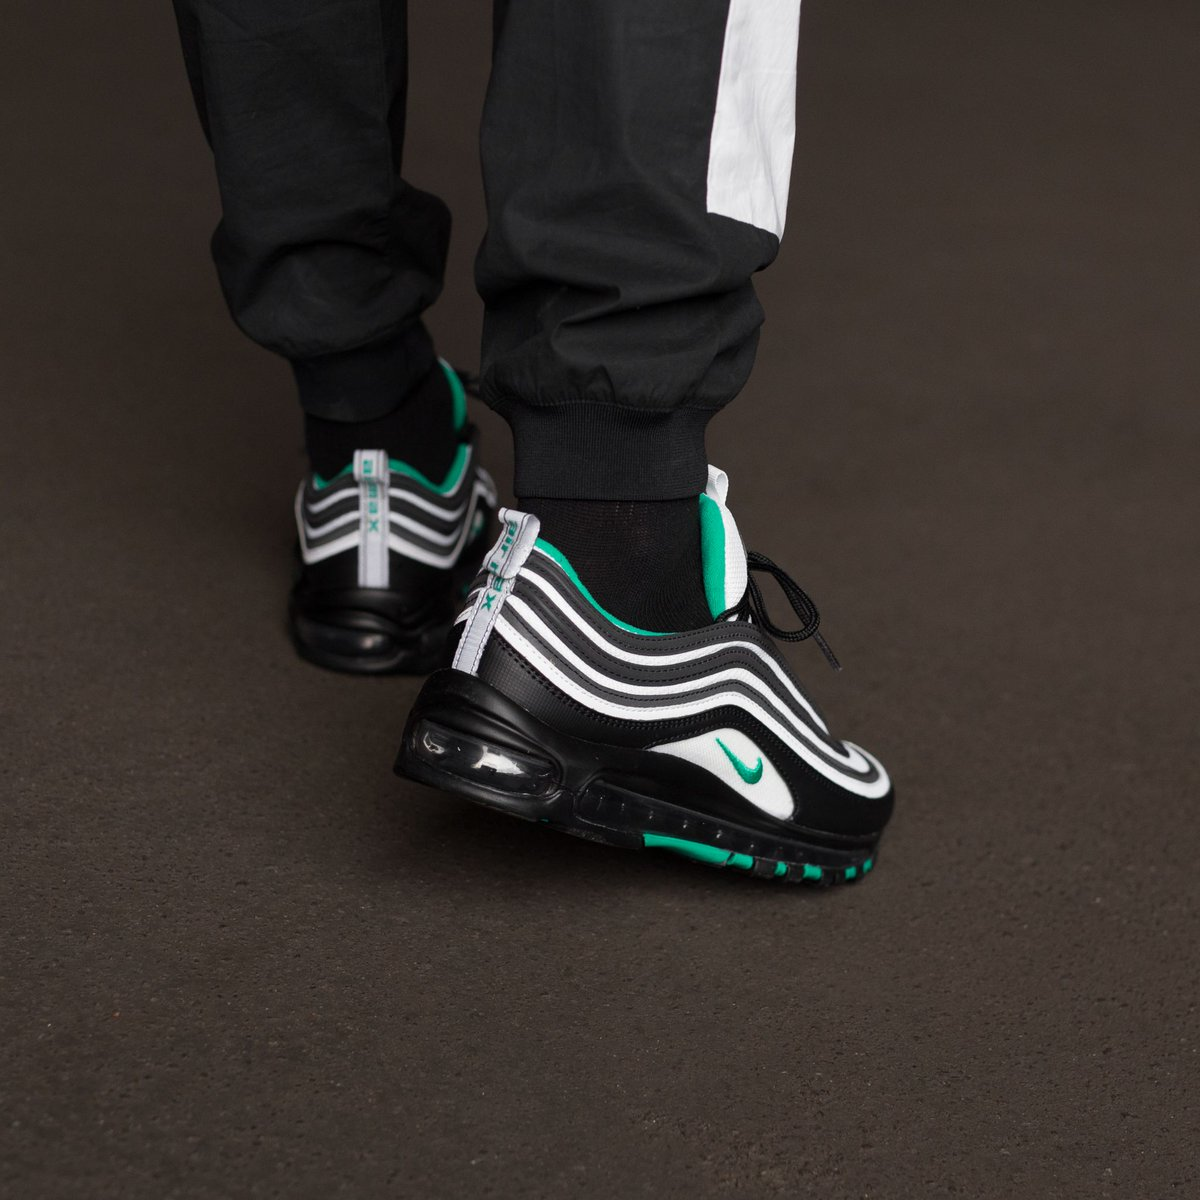 Nike Air Max 97 BlackClear Emerald White For Sale